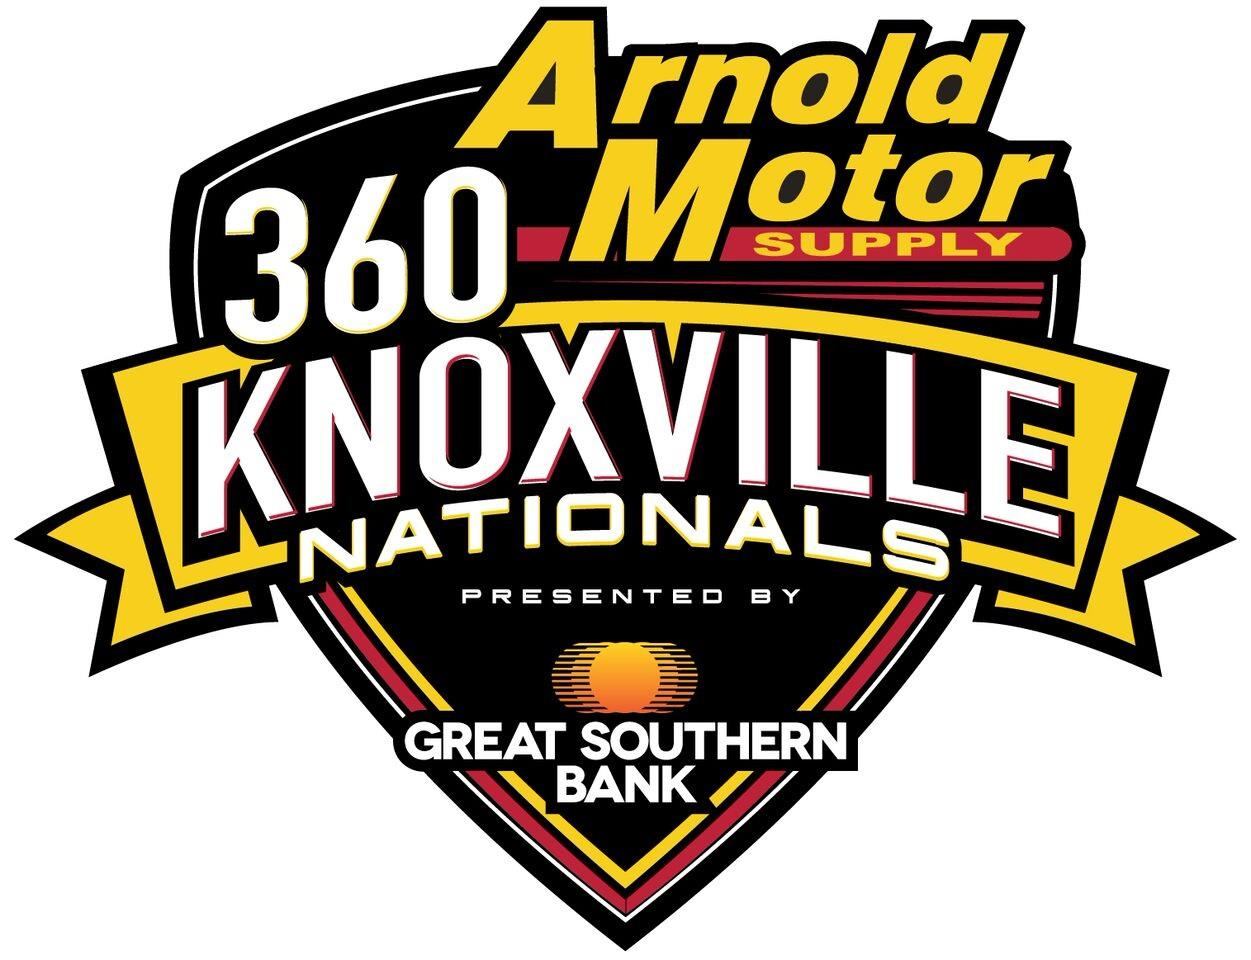 27th Annual Arnold Motor Supply 360 Nationals presented by Great Southern Bank